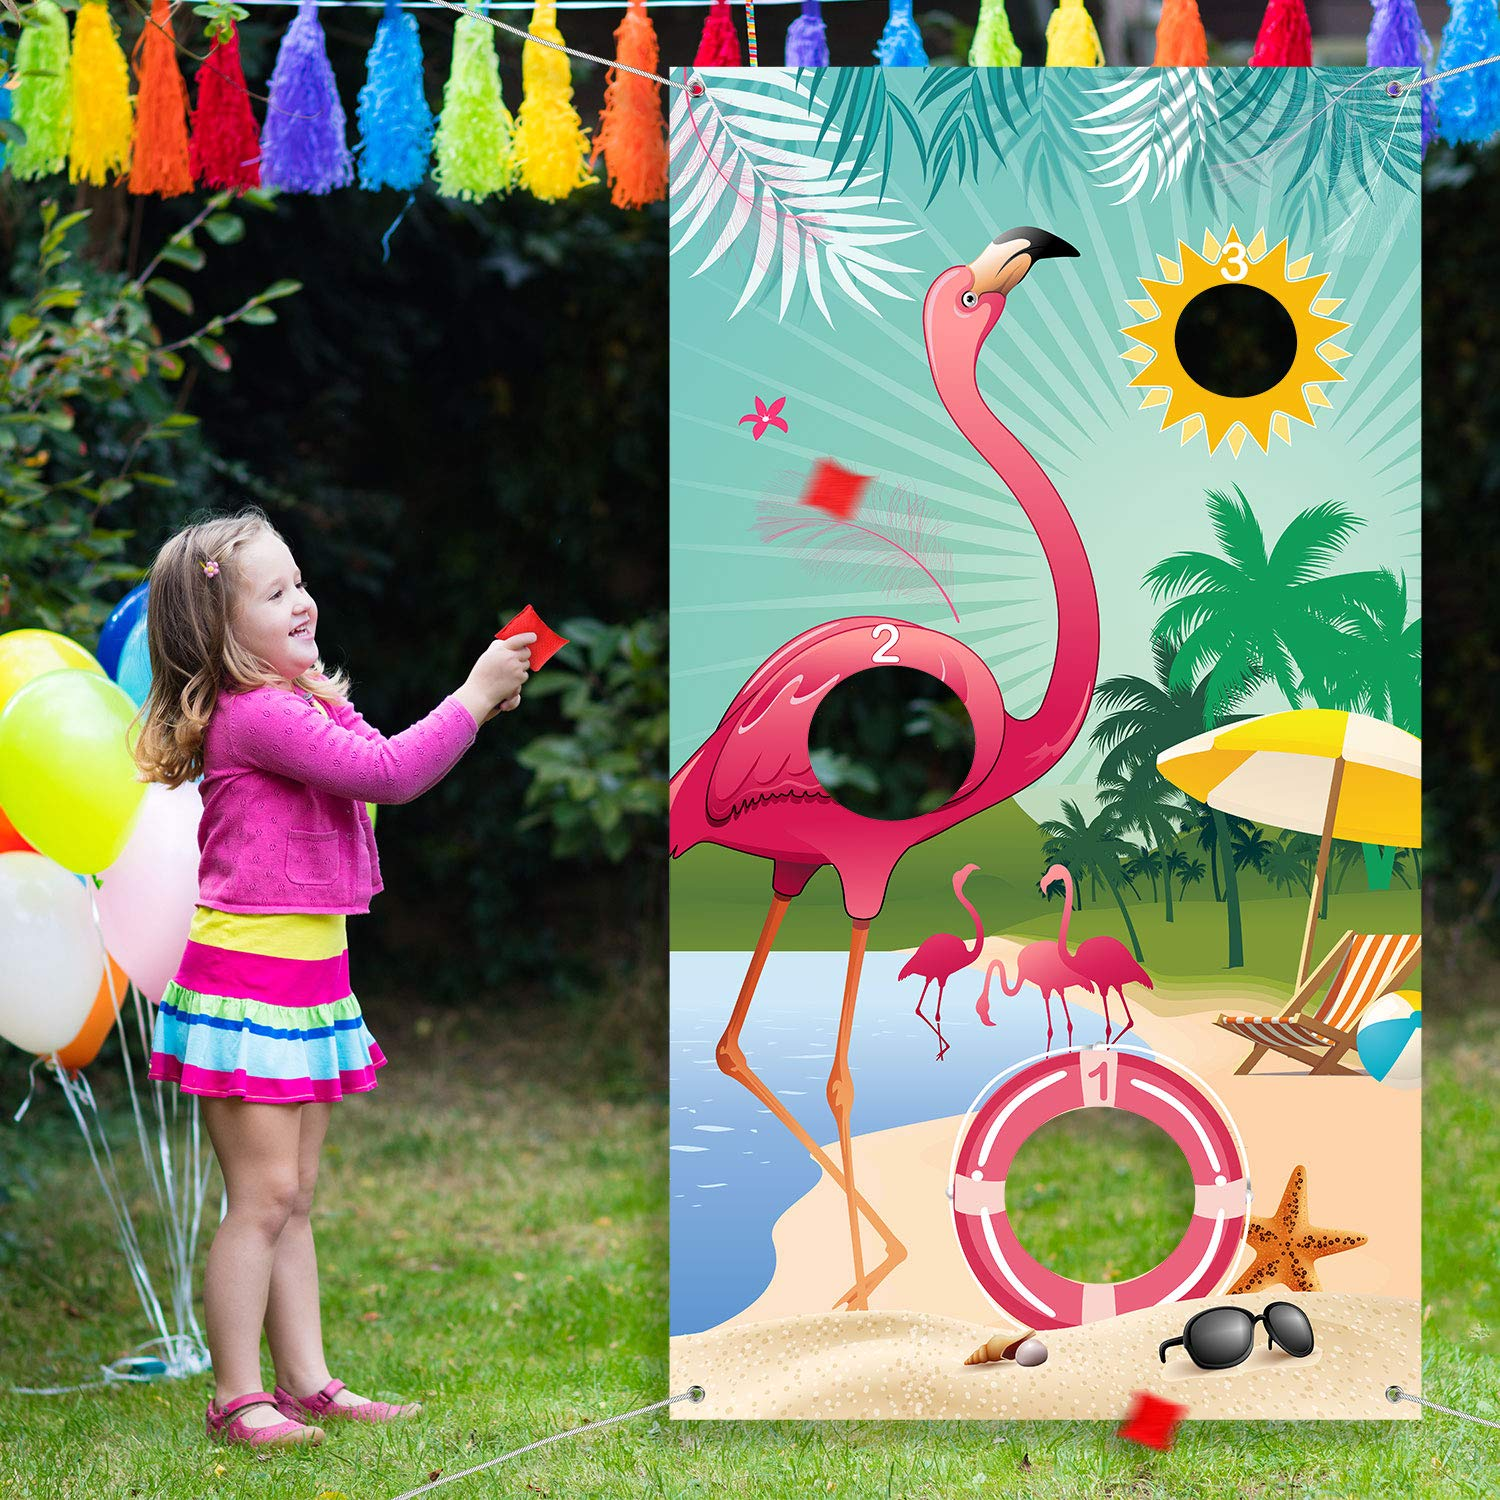 Carnival Toss Game Flamingo Toss Games with 3 Nylon Bean Bags, Flamingo Backdrop Toss Games Banner for Flamingo Theme Party Birthday Party Decoration by Blulu